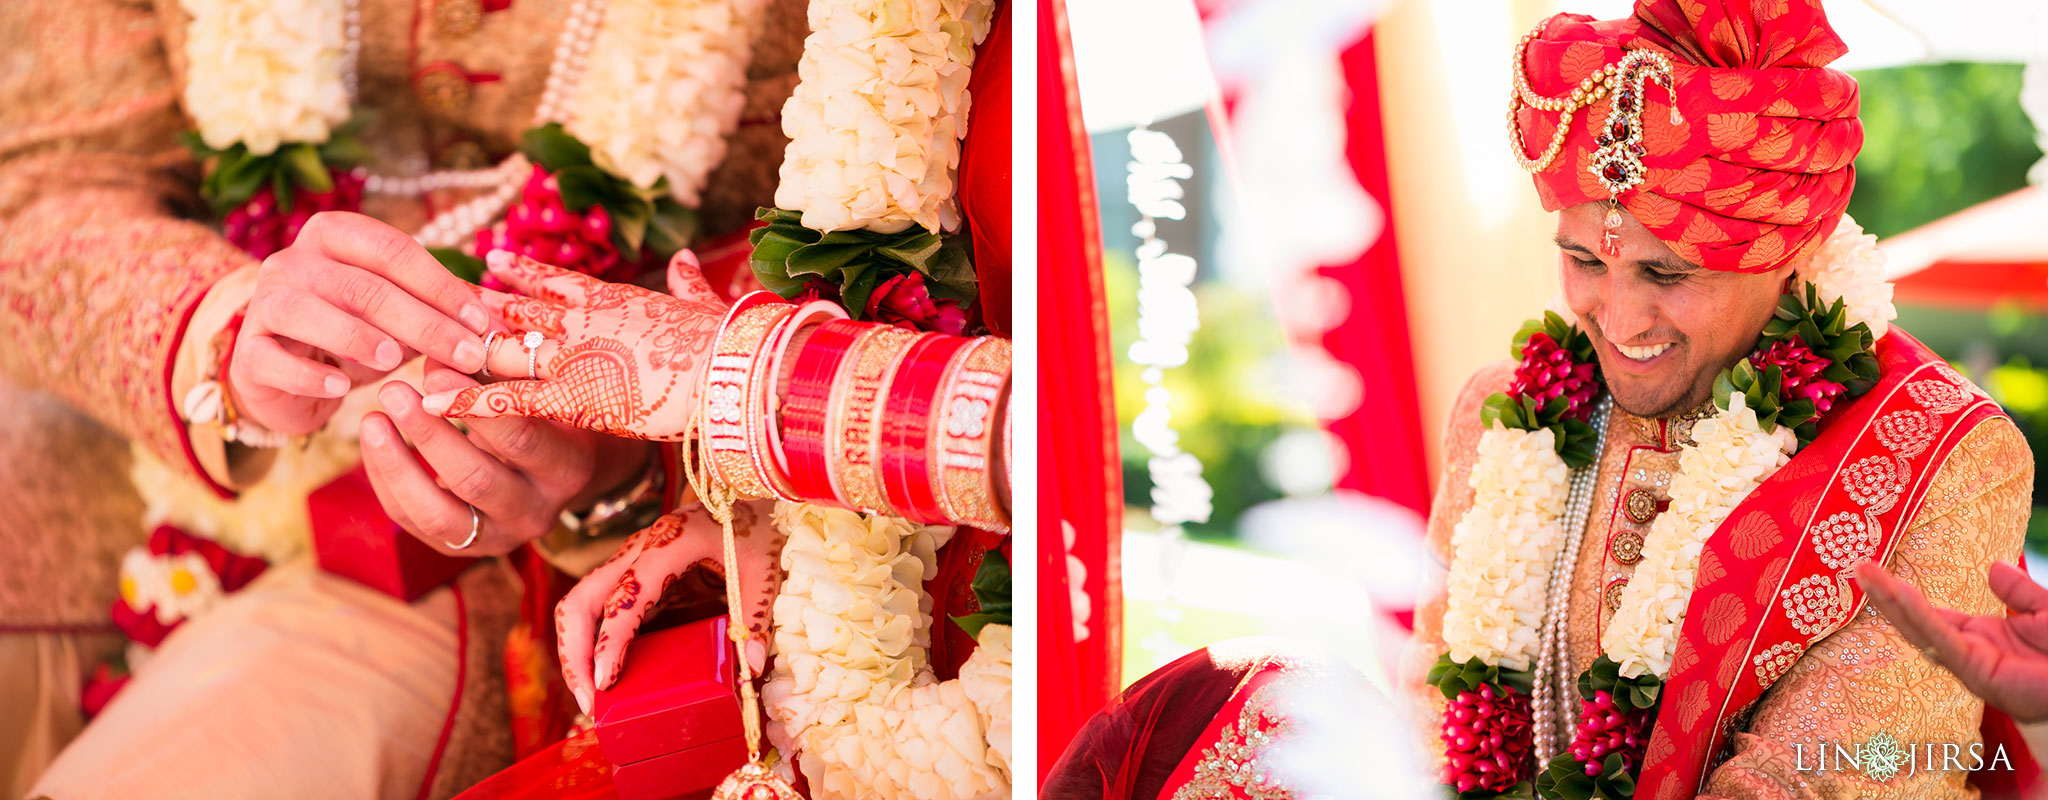 29 four seasons westlake village indian wedding ceremony photography